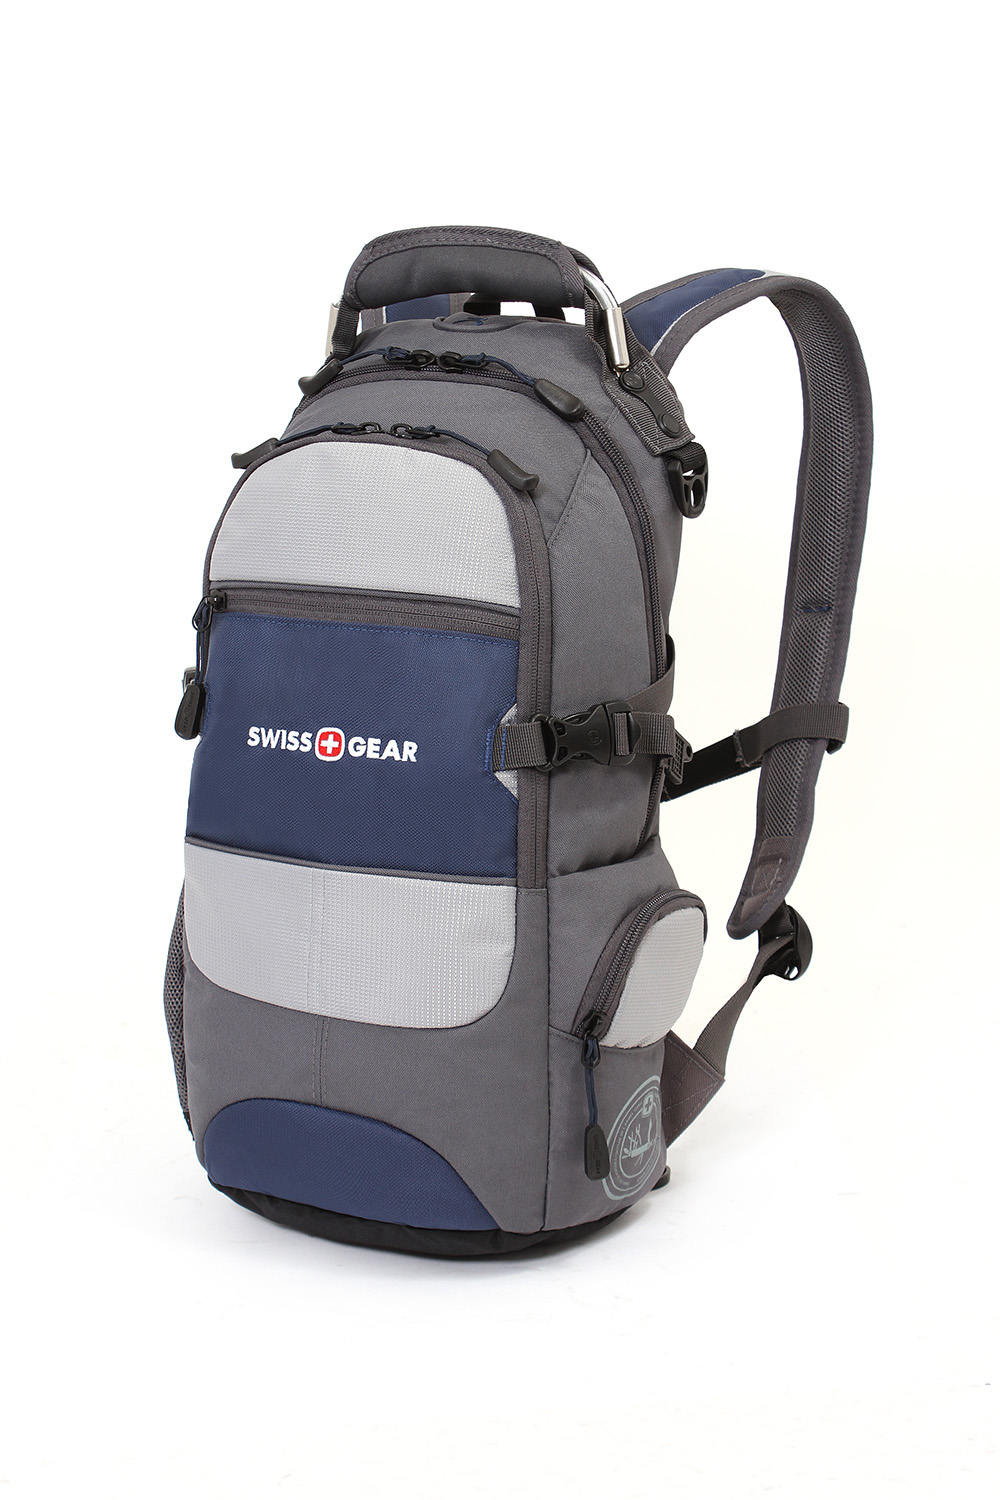 Swiss Gear Backpack Blue Click Backpacks